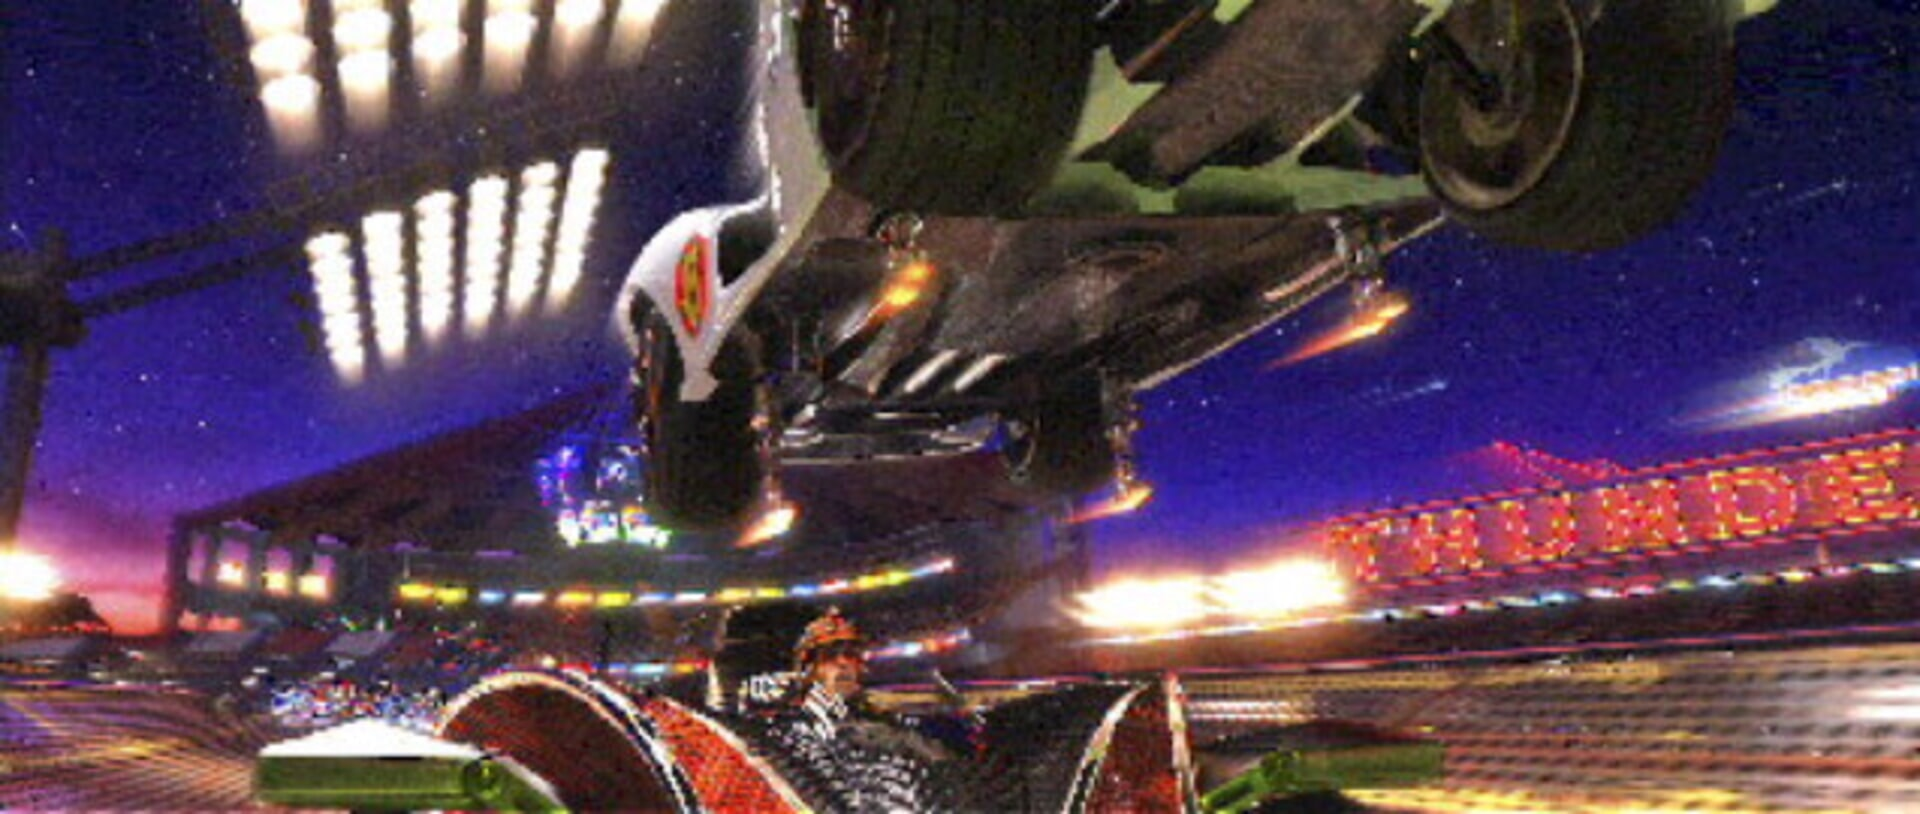 Speed Racer - Image 34